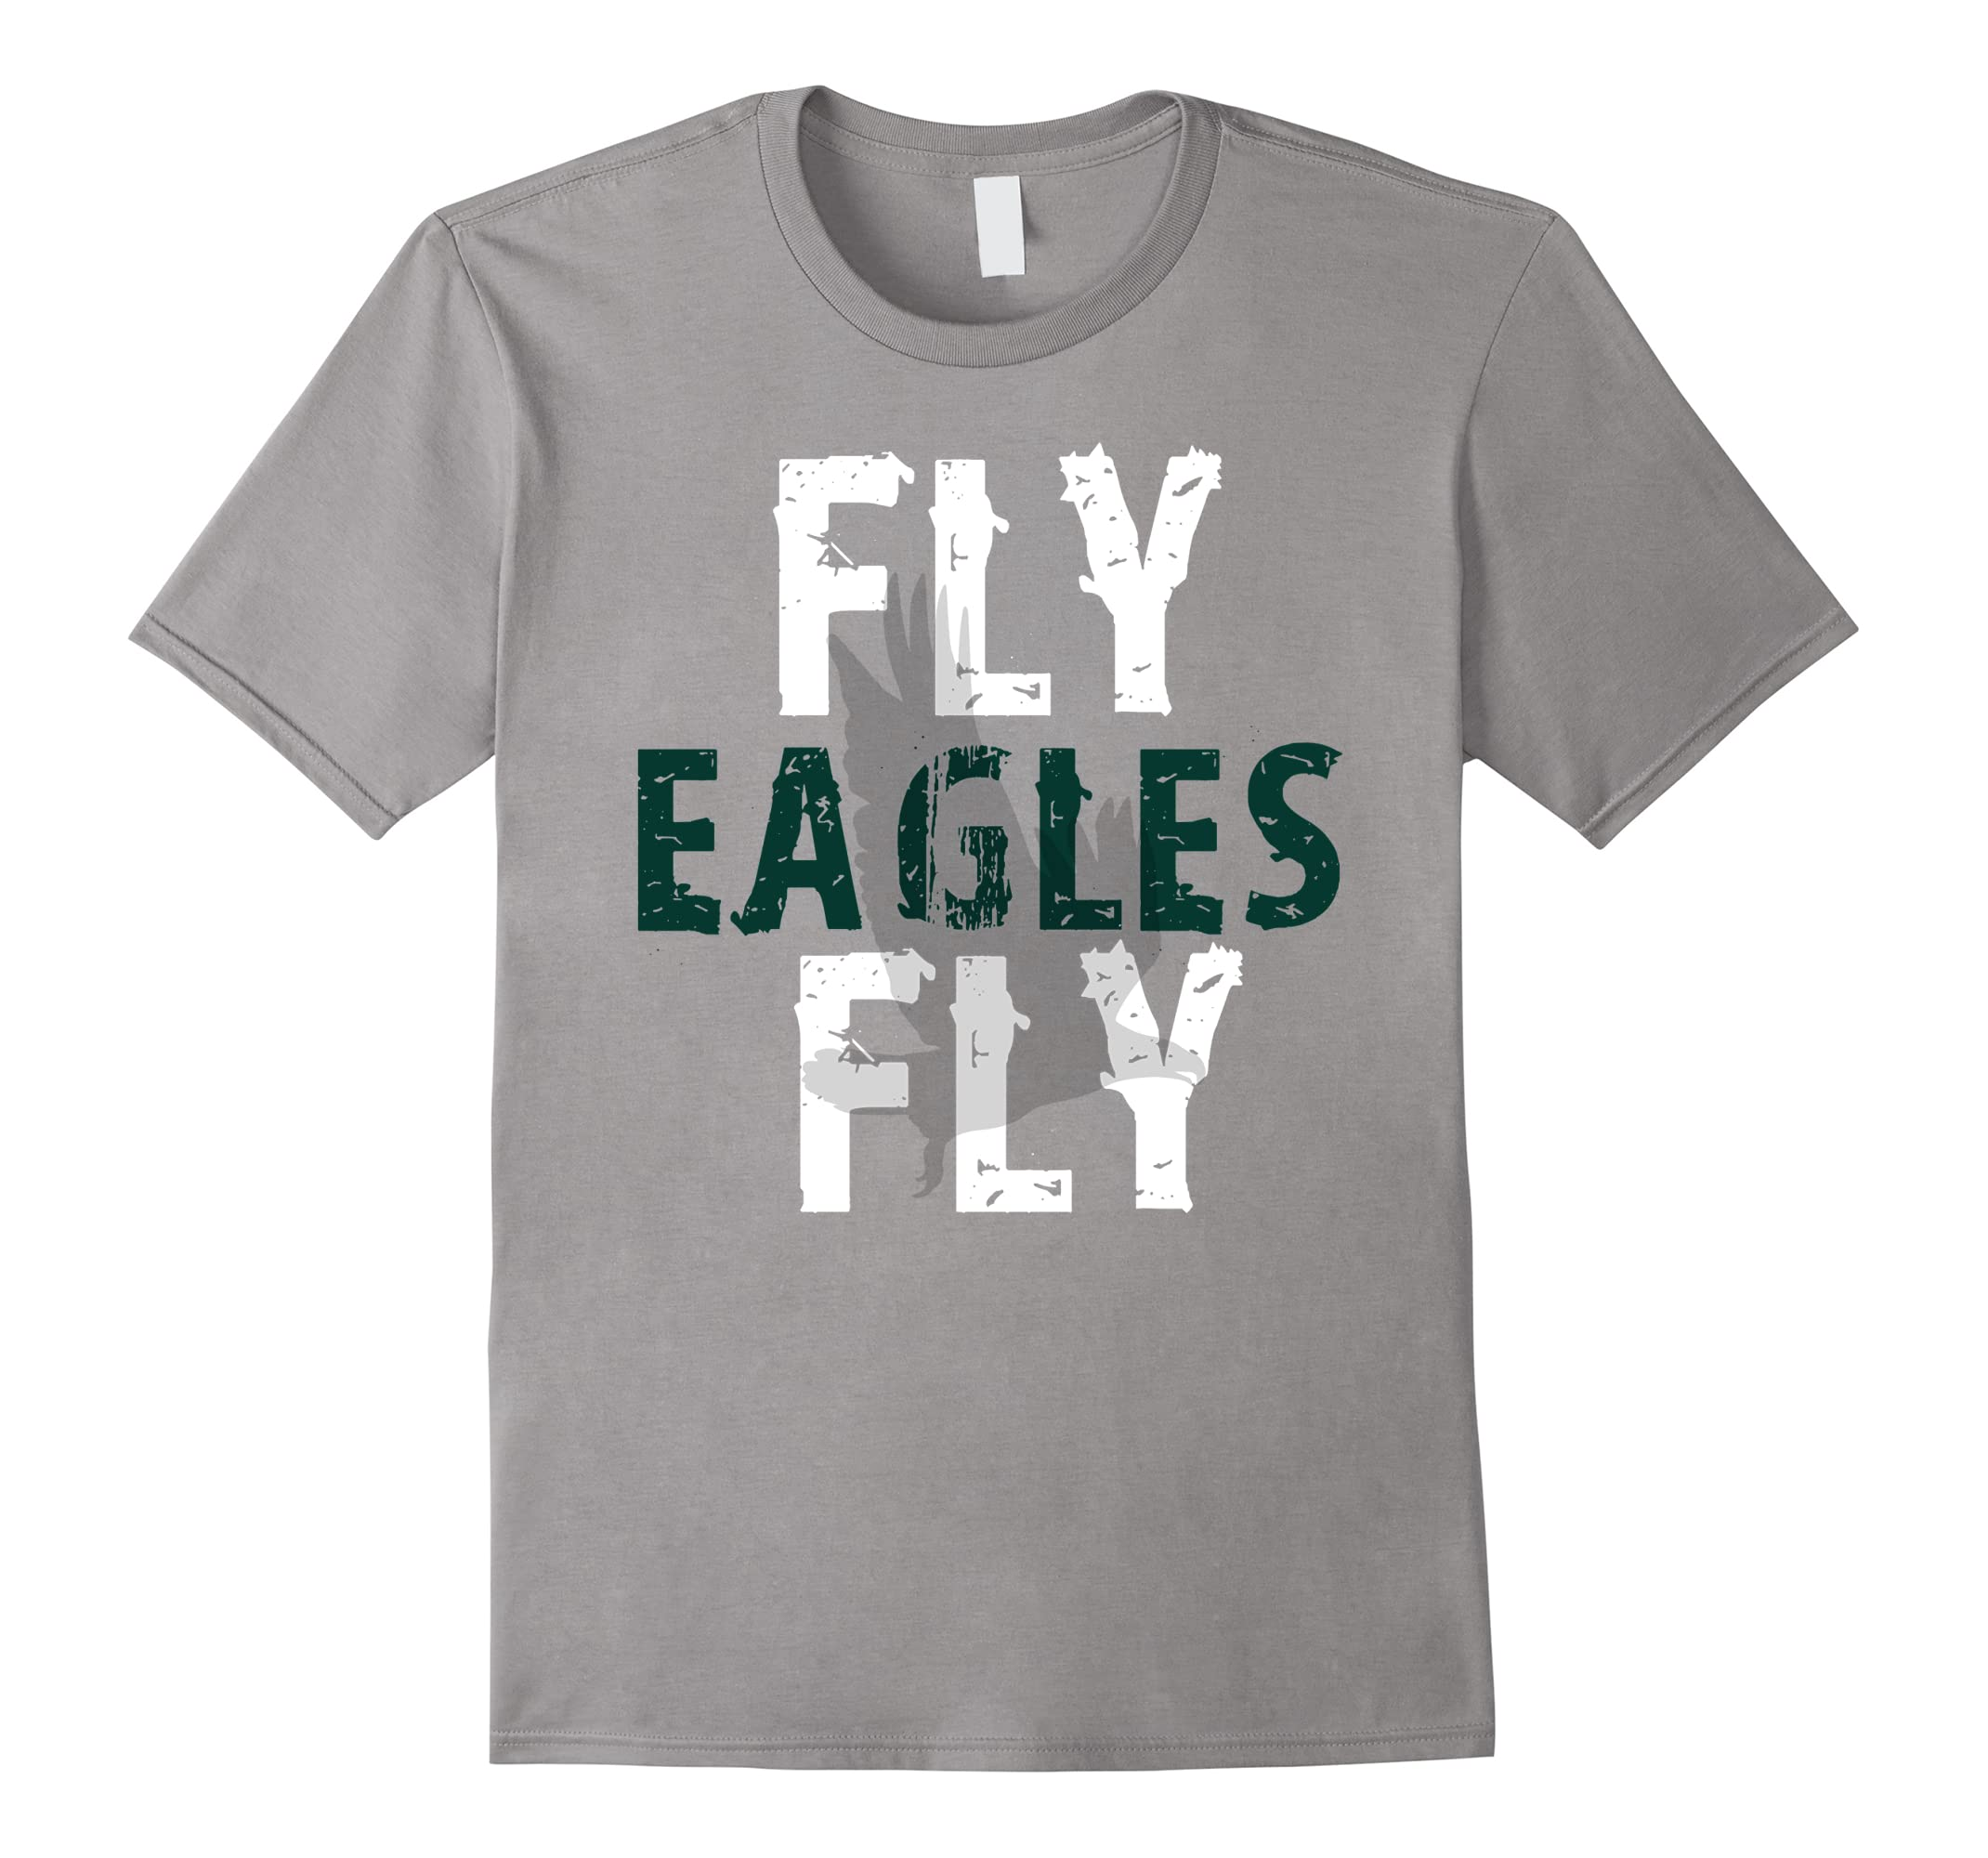 Eagles ~ Fly Eagles Fly ~ Philly ~ Men, Women, Child-ah my shirt one gift